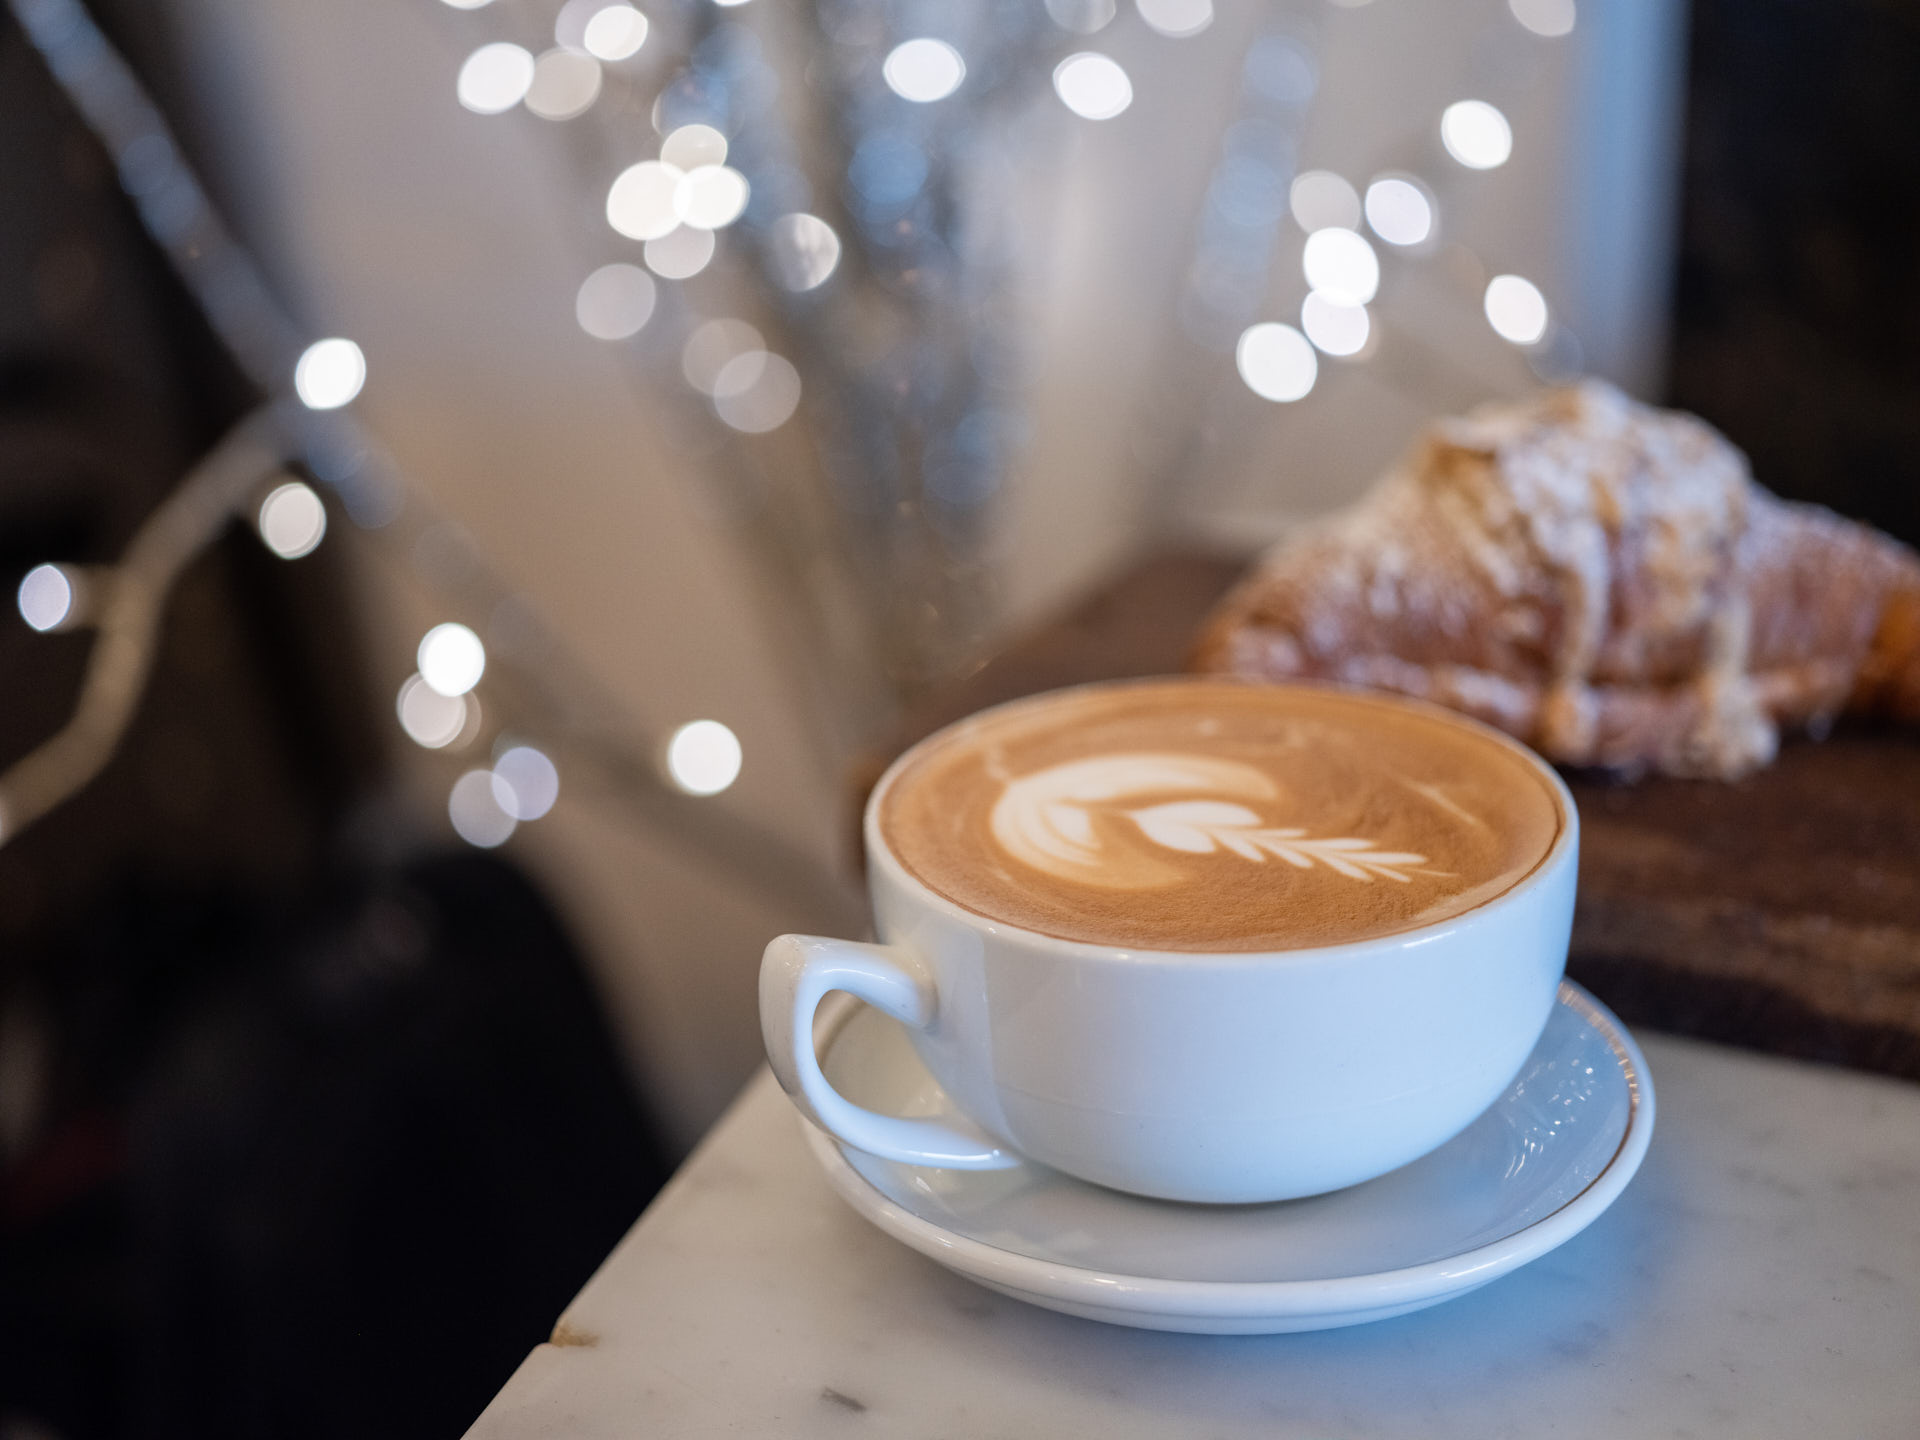 local-coffee-shops-are-grounded-in-community-12-romancing-the-bean